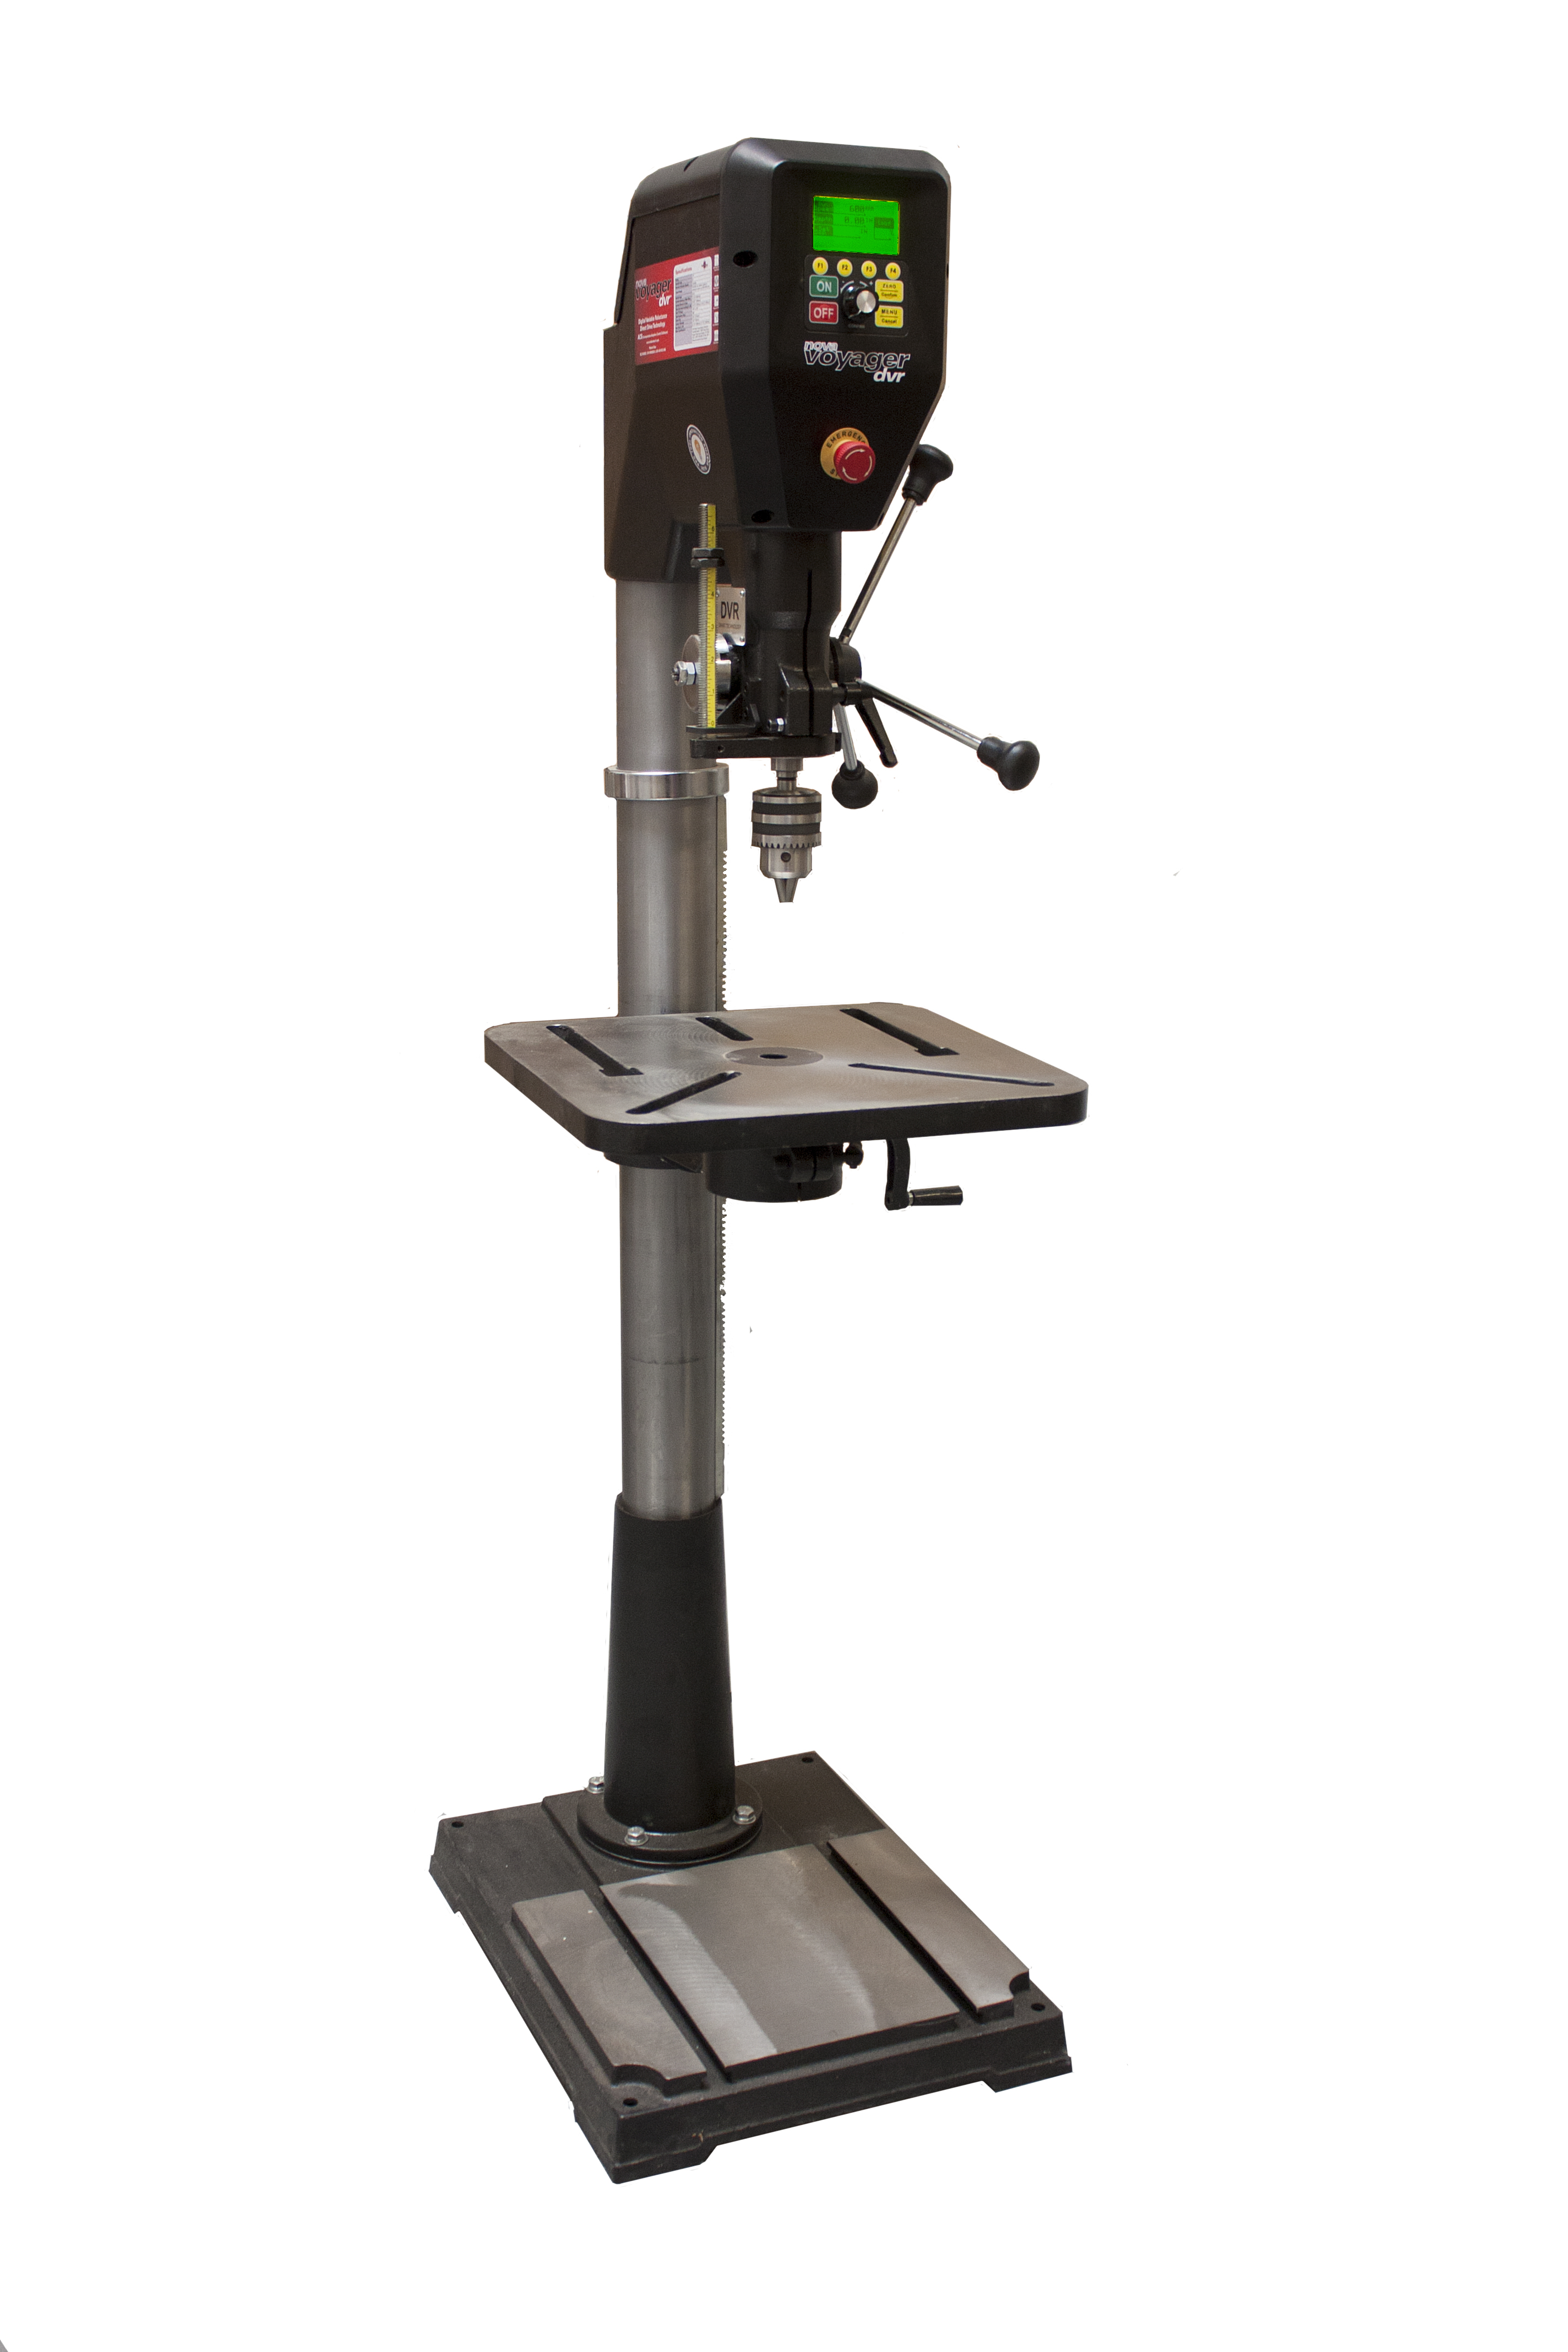 hight resolution of the workshop s first smart drill press combing the best of drill presses with 21st century nova innovation